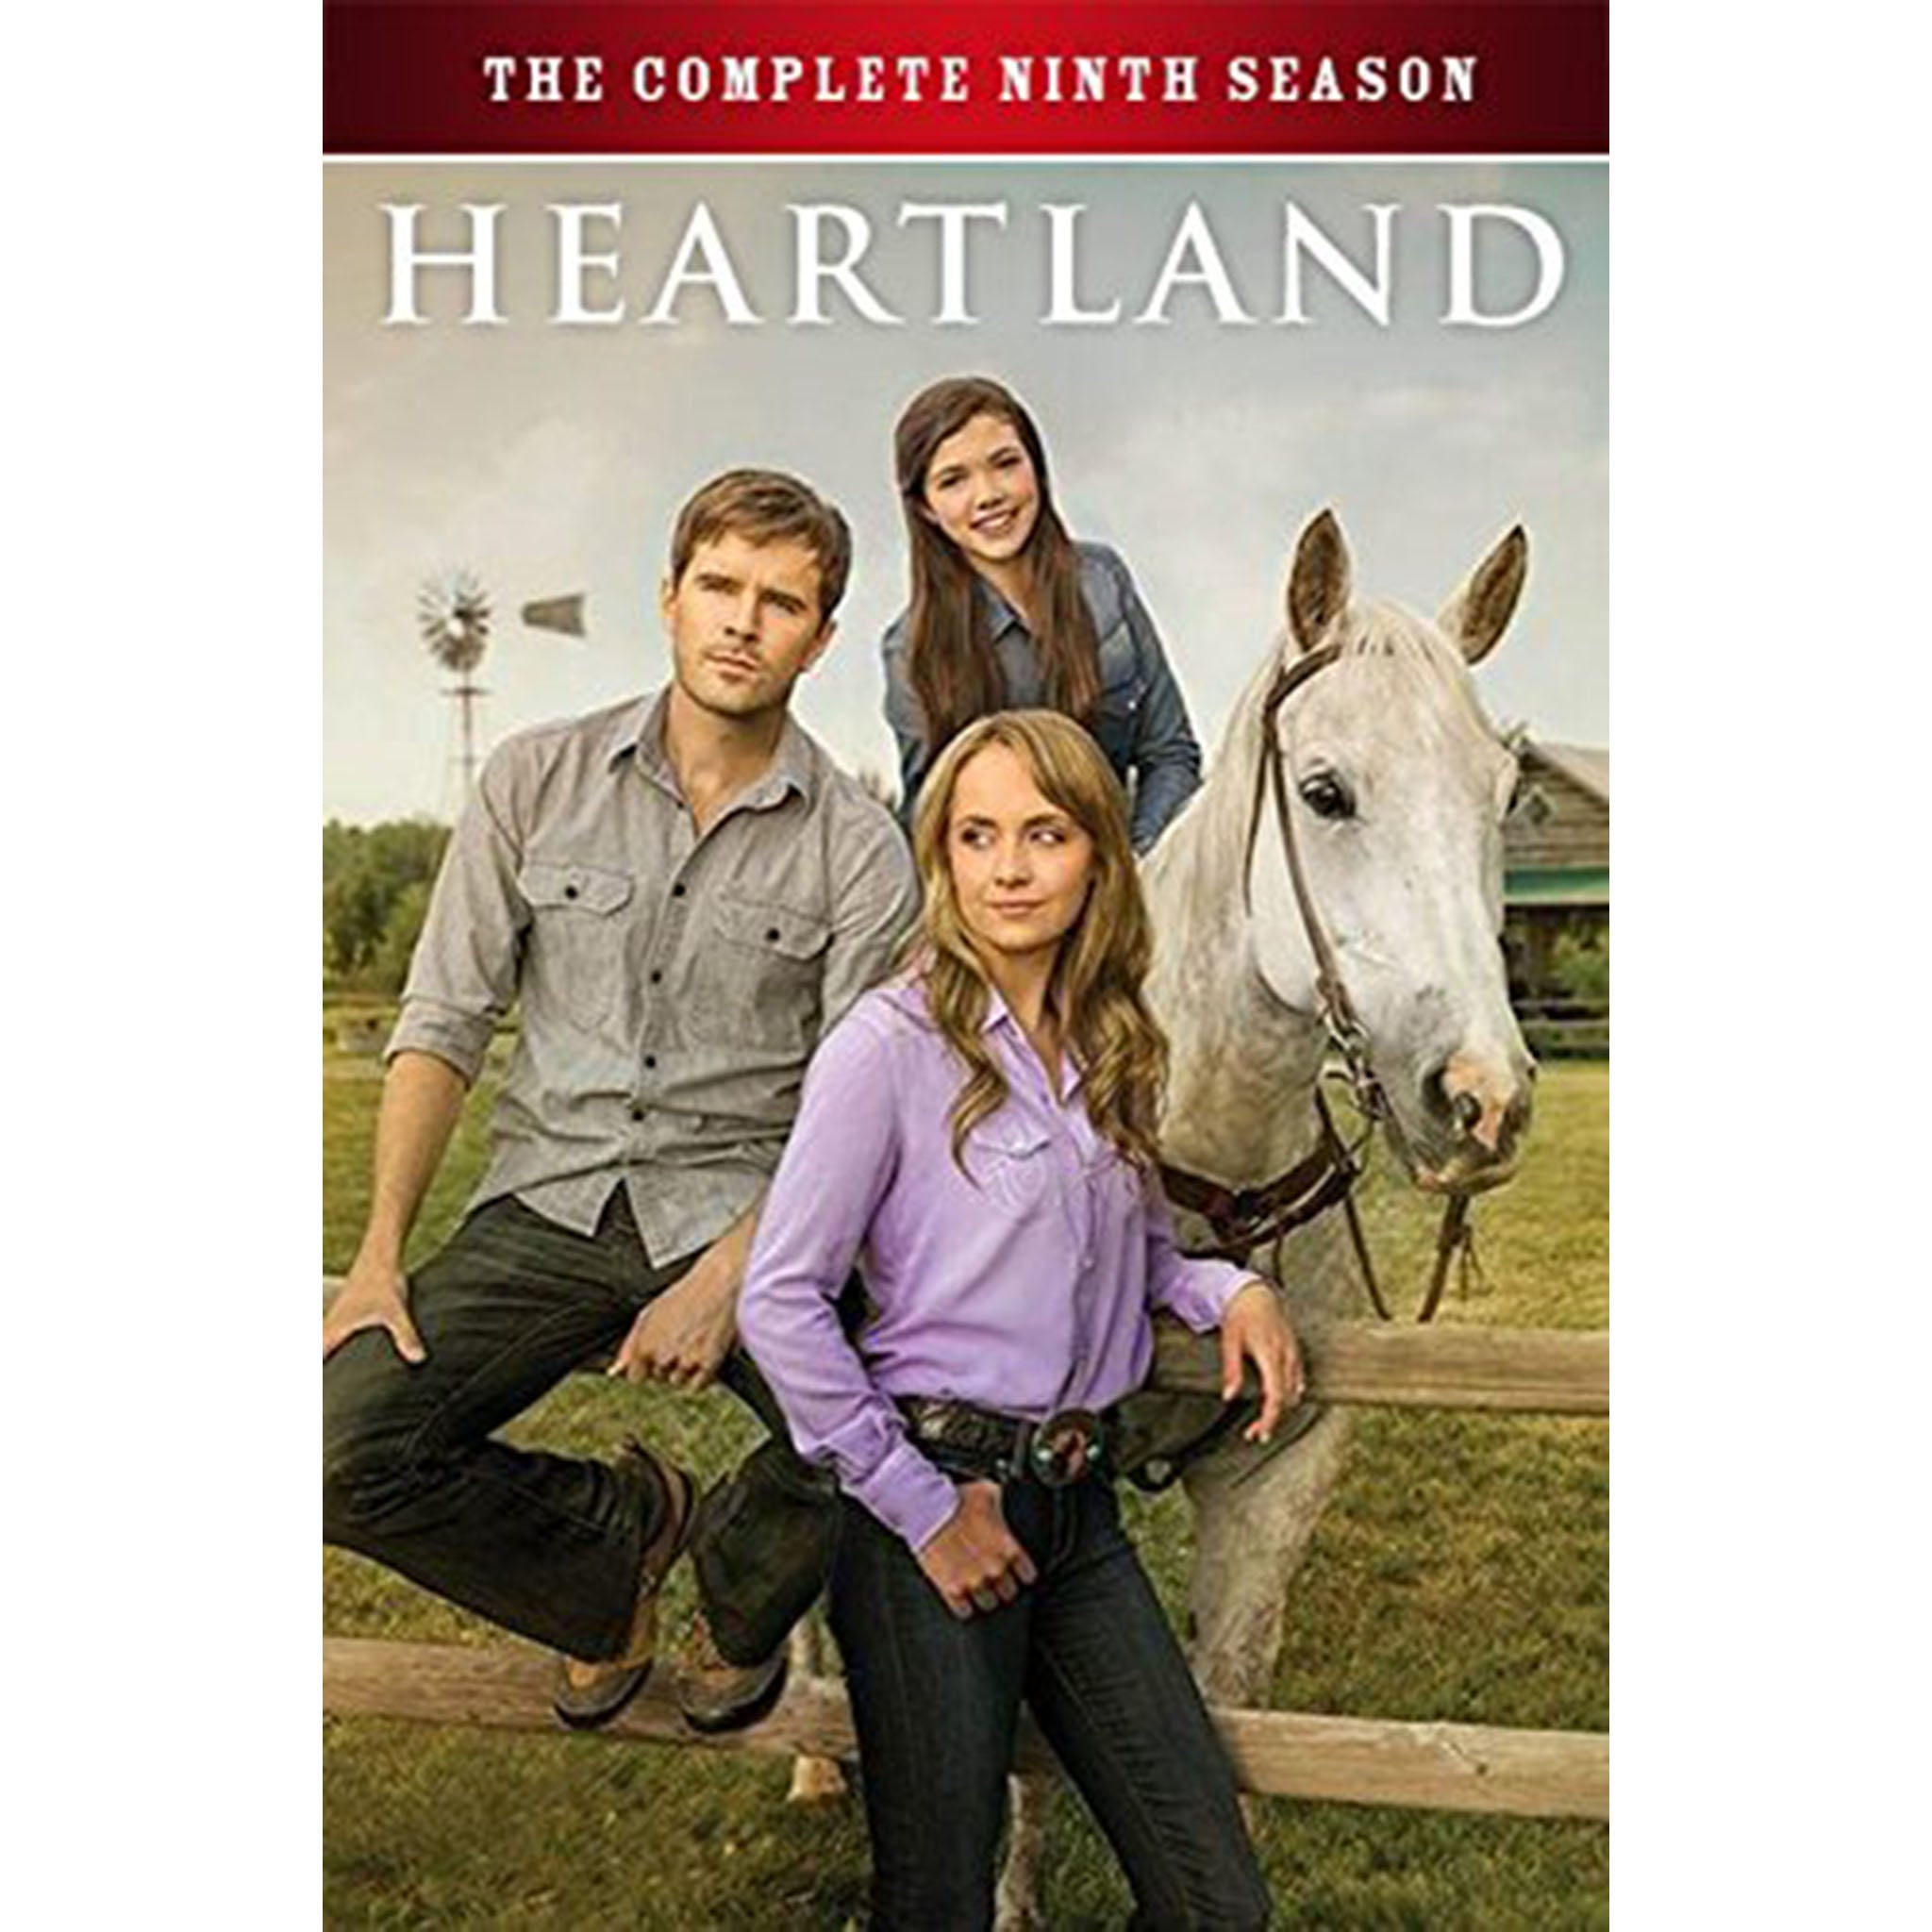 Heartland: Season 9 (DVD) - DVDsHQ